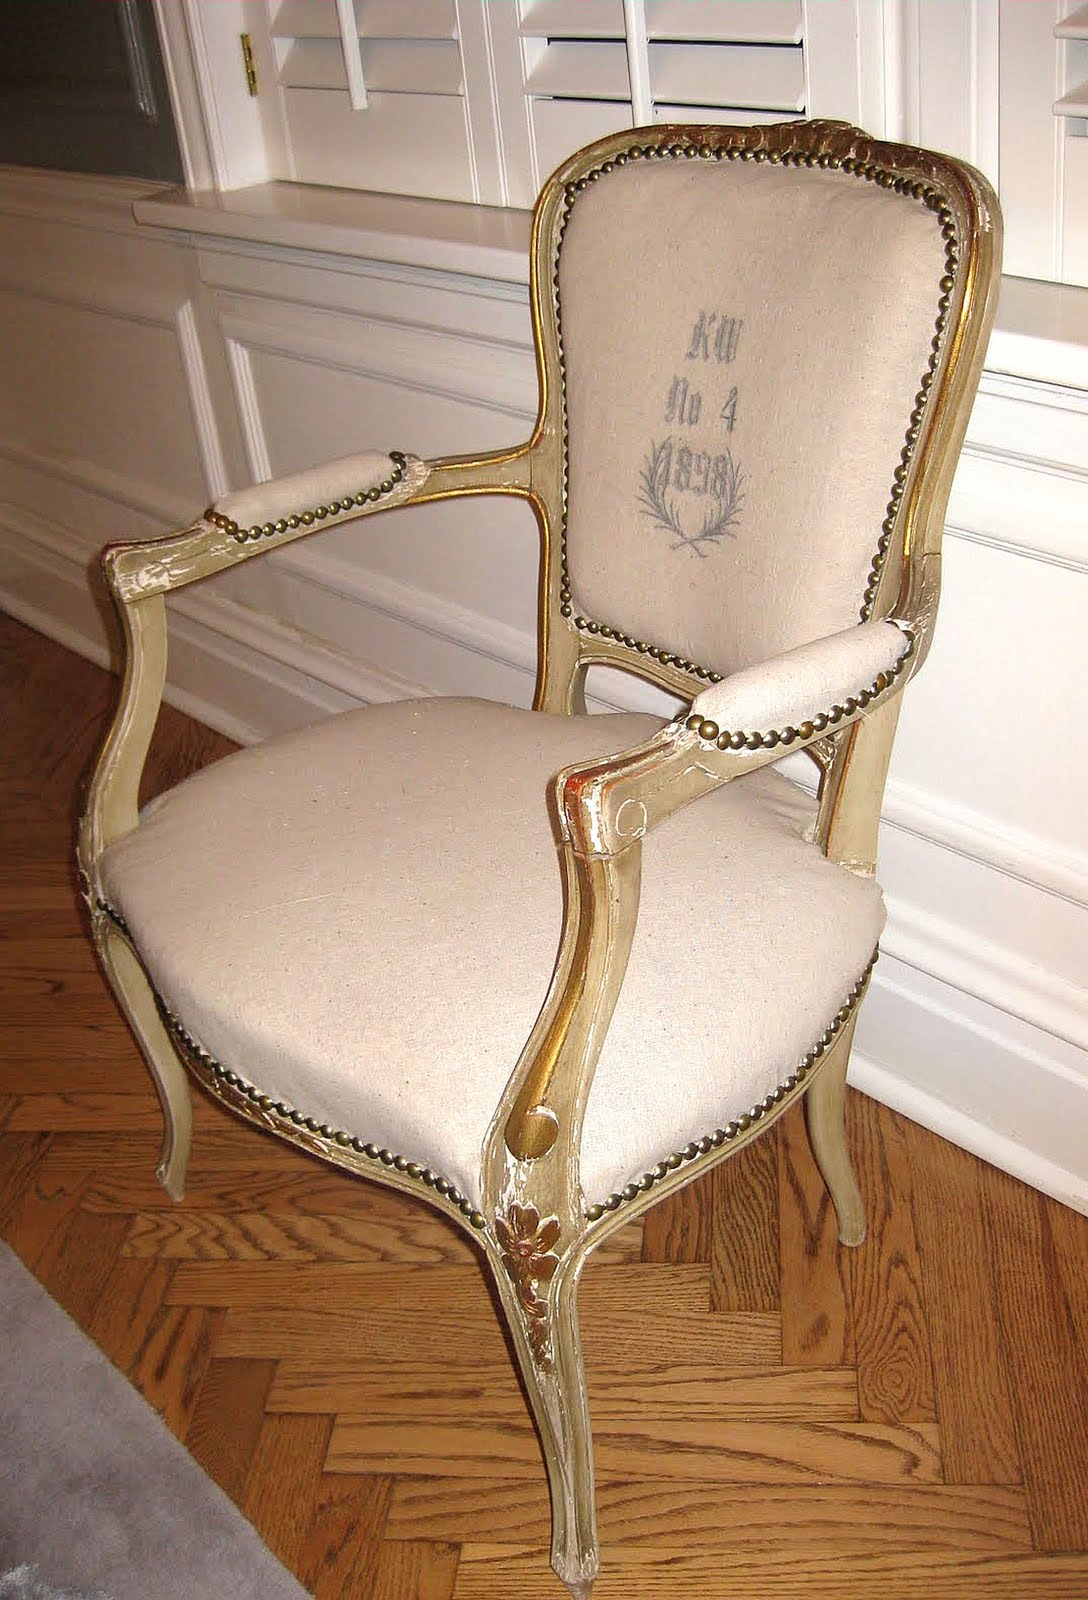 diedre actually purchased this chair for a mere she transformed it by it using the citra solv transfer method to apply the french